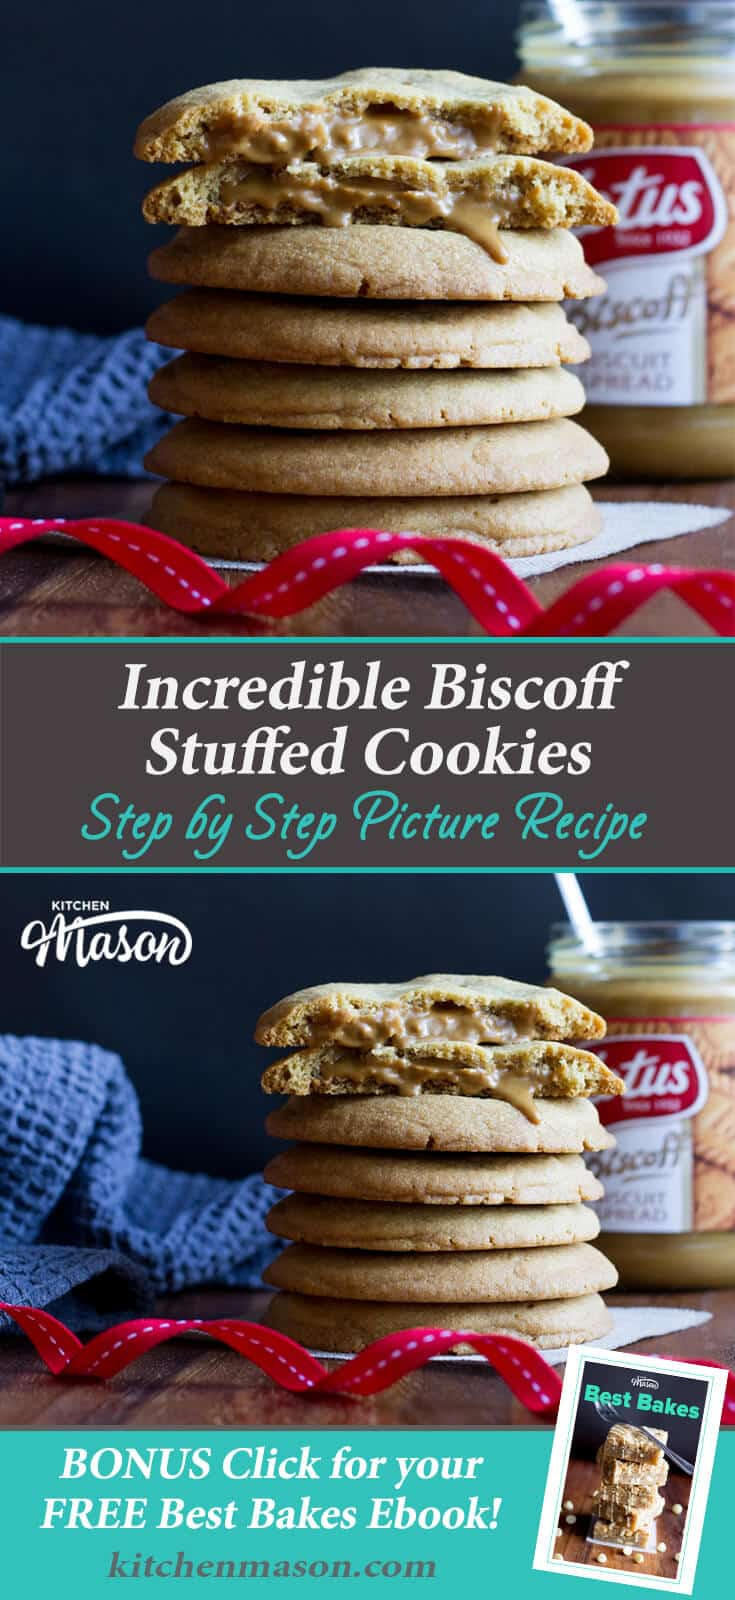 Easy Cookie Recipes | Easy Biscoff Recipes | Biscoff Stuffed Cookies